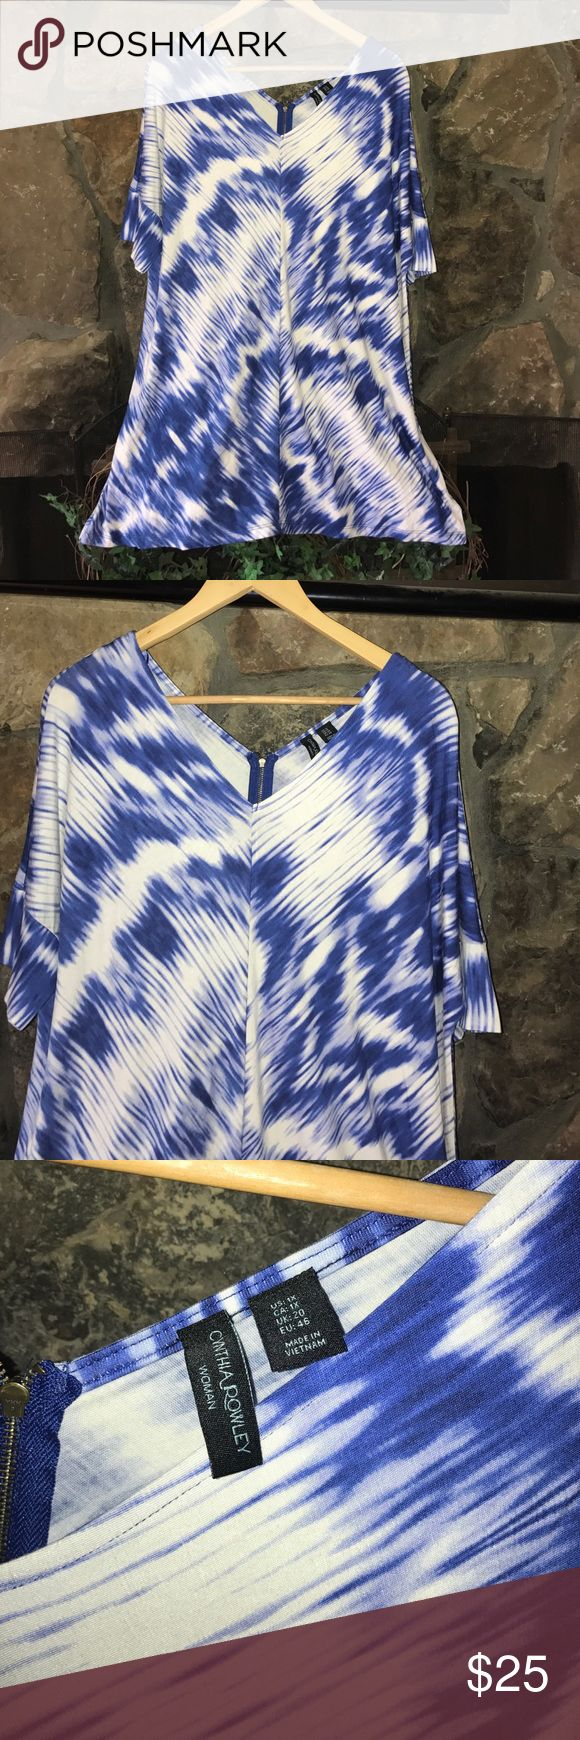 🌊Cynthia Rowley Tie-Dye Tunic🌊 This is a blue and white tie-dye tunic V in the back and front and back zipping seam down the front and back for added definition. Would be beautiful with pencil skirt or jeans or leggings. 32 inches in length. Lot of stretch and give. 95% rayon 5% spandex machine washable. Cynthia Rowley Tops Tunics